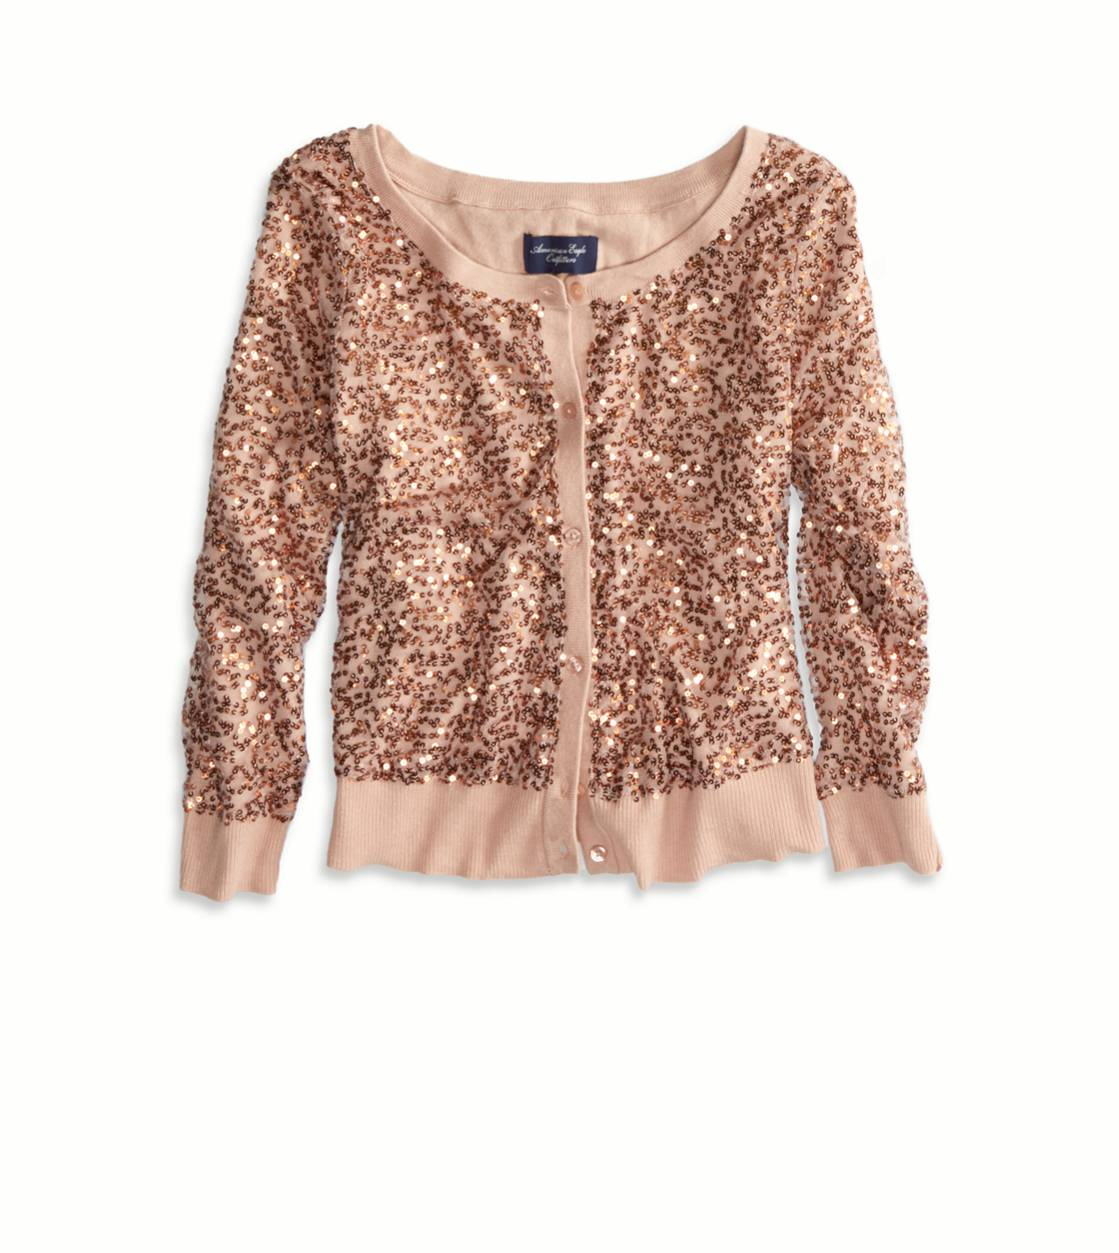 Rose AE Sequined Crop Cardigan